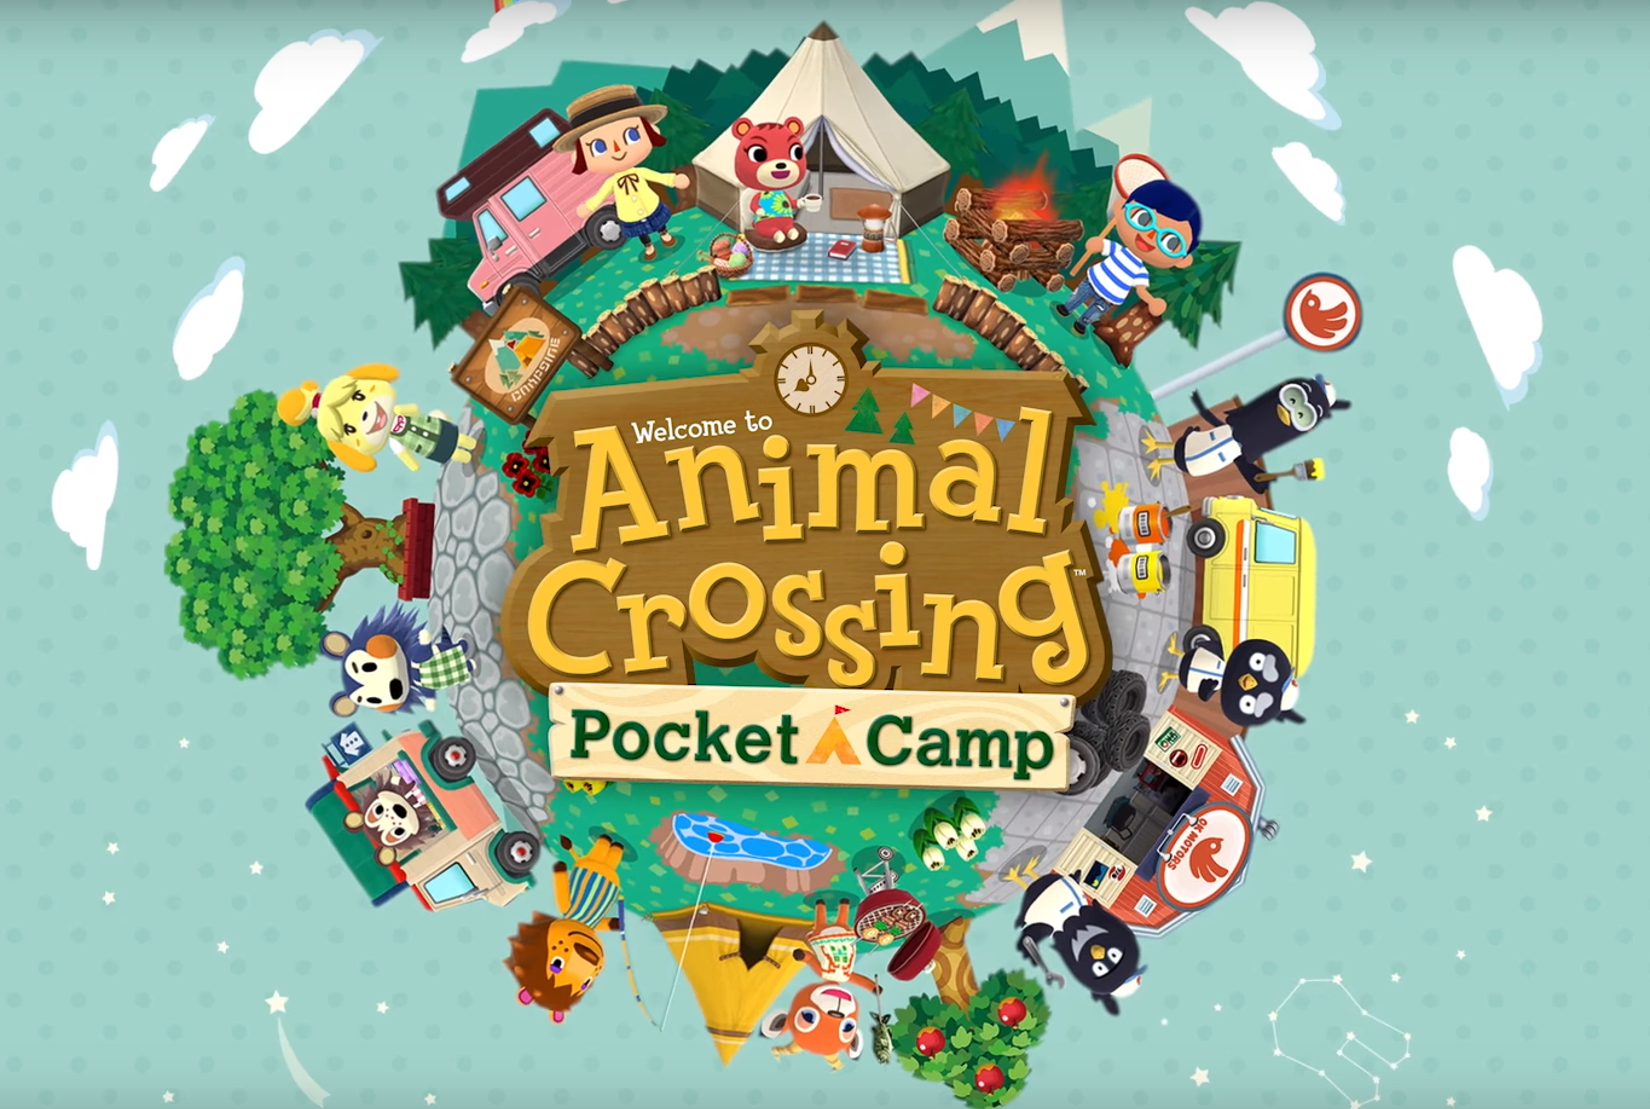 6 Surprising Facts About Nintendo's Animal Crossing | Mental